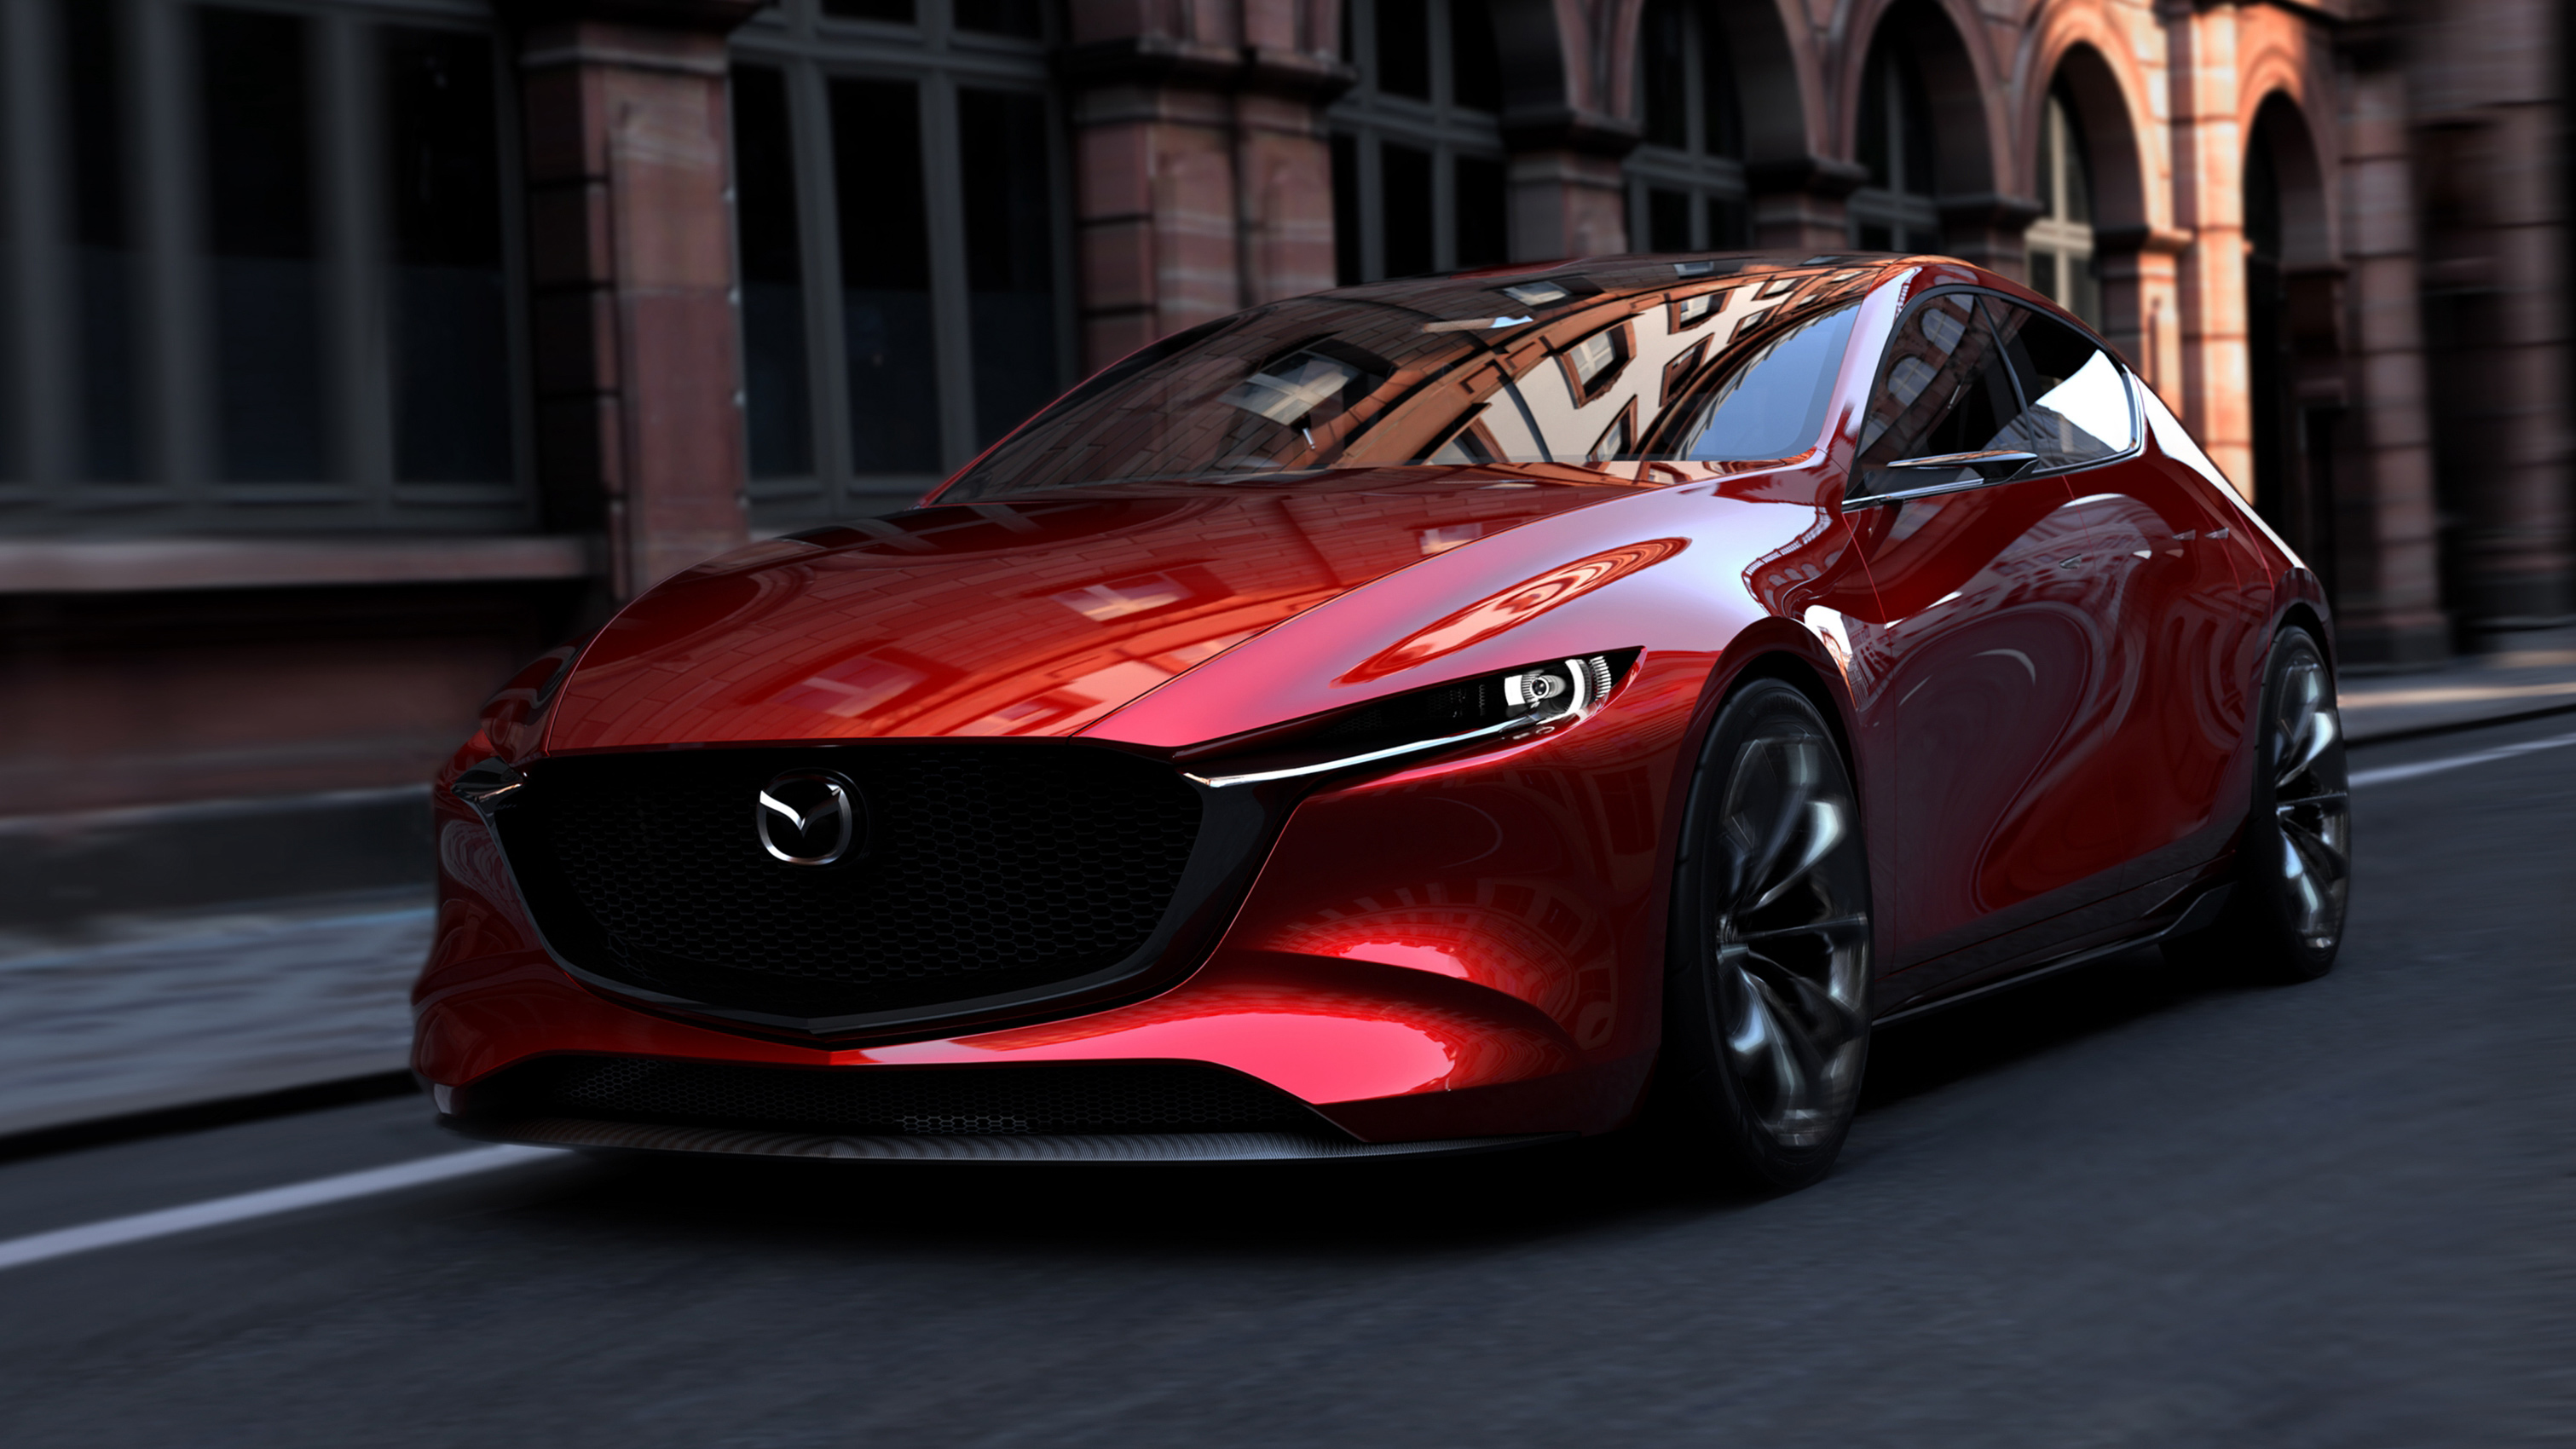 3022x1700 - Mazda Wallpapers 1